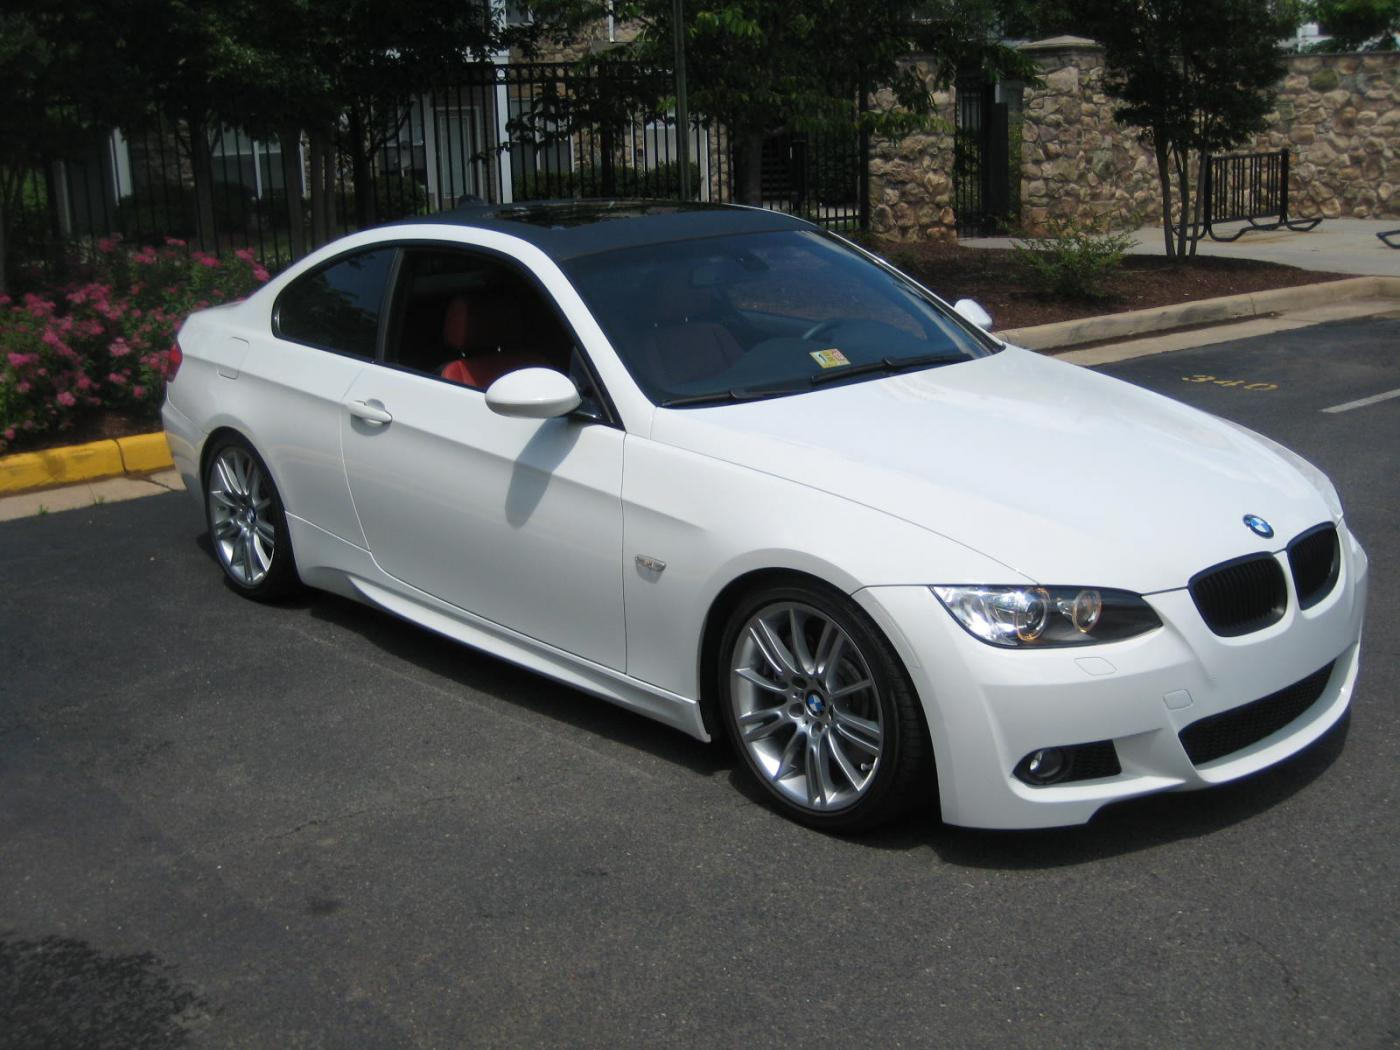 fs 2009 bmw 335i coupe m sport alpine white coral red all upgrades. Black Bedroom Furniture Sets. Home Design Ideas